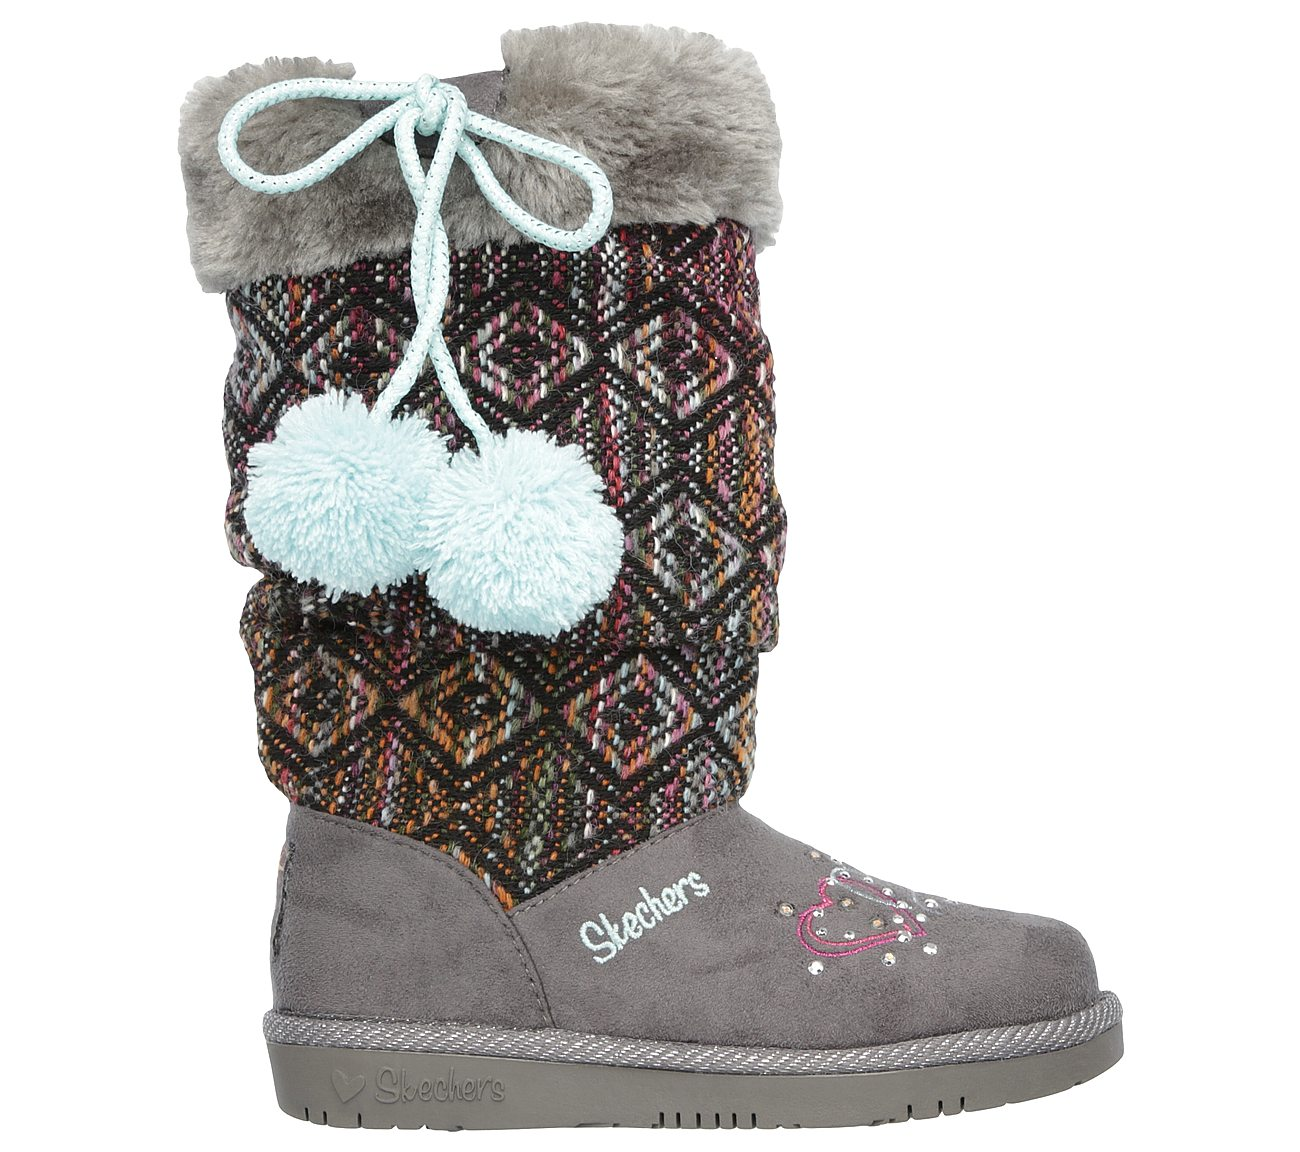 Glamslam Lil Lovelies Boots Girls Light Up Shoes 10643L Skechers Twinkle Toes